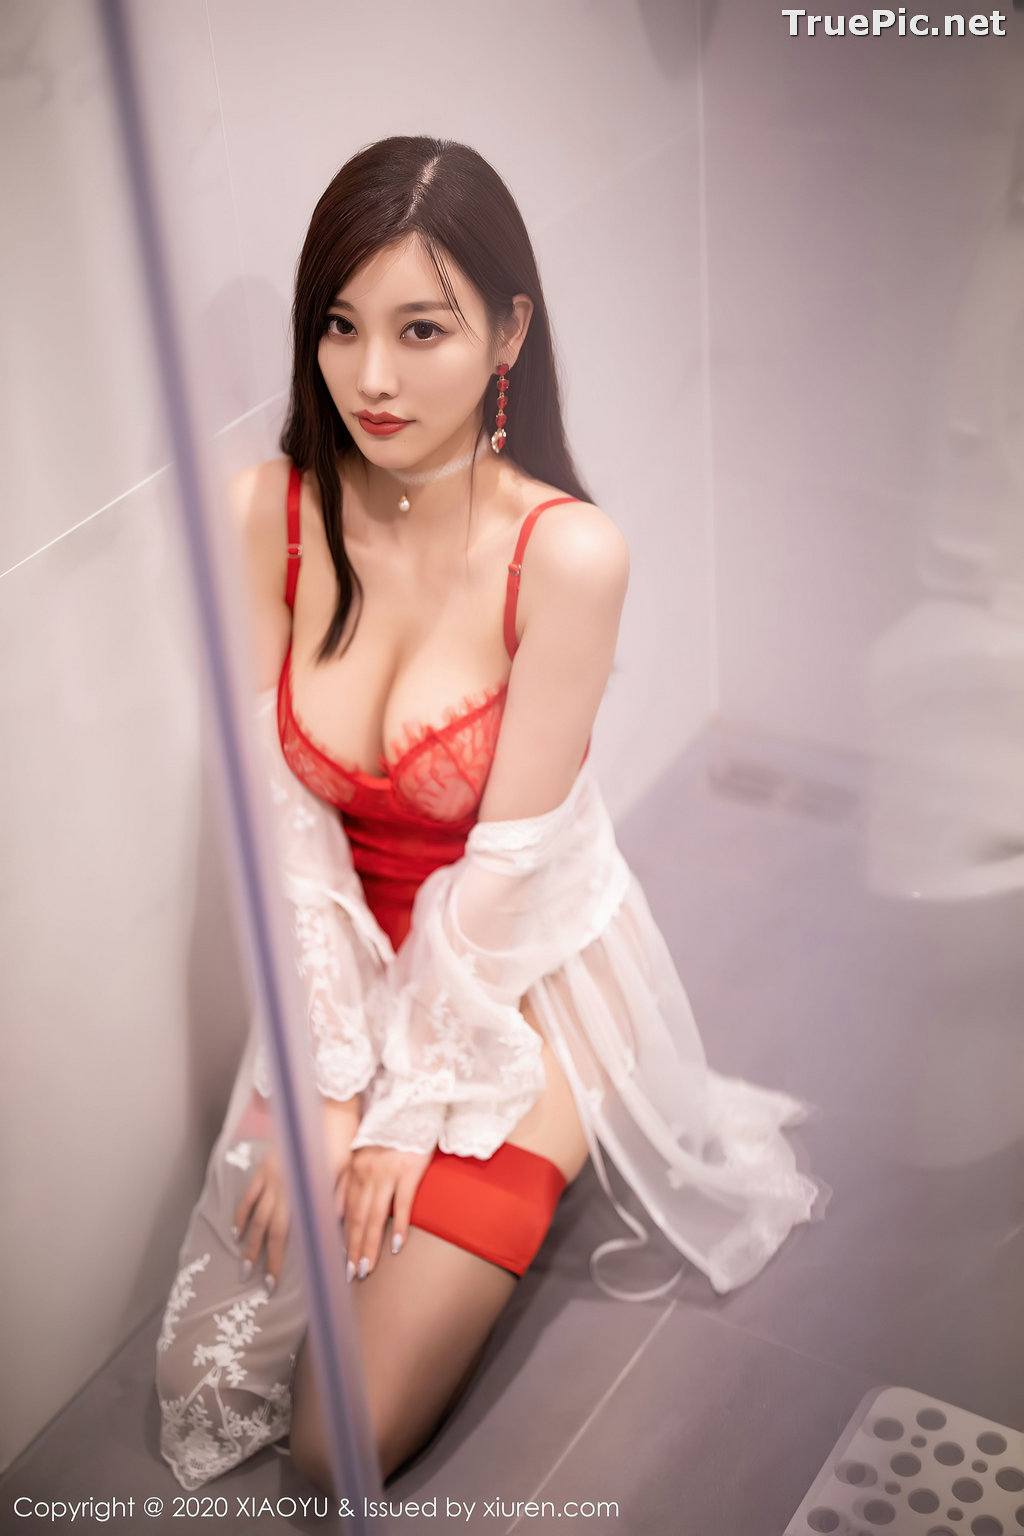 Image XiaoYu Vol.413 - Chinese Model - Yang Chen Chen (杨晨晨sugar)- Red Crystal-clear Lingerie - TruePic.net - Picture-10